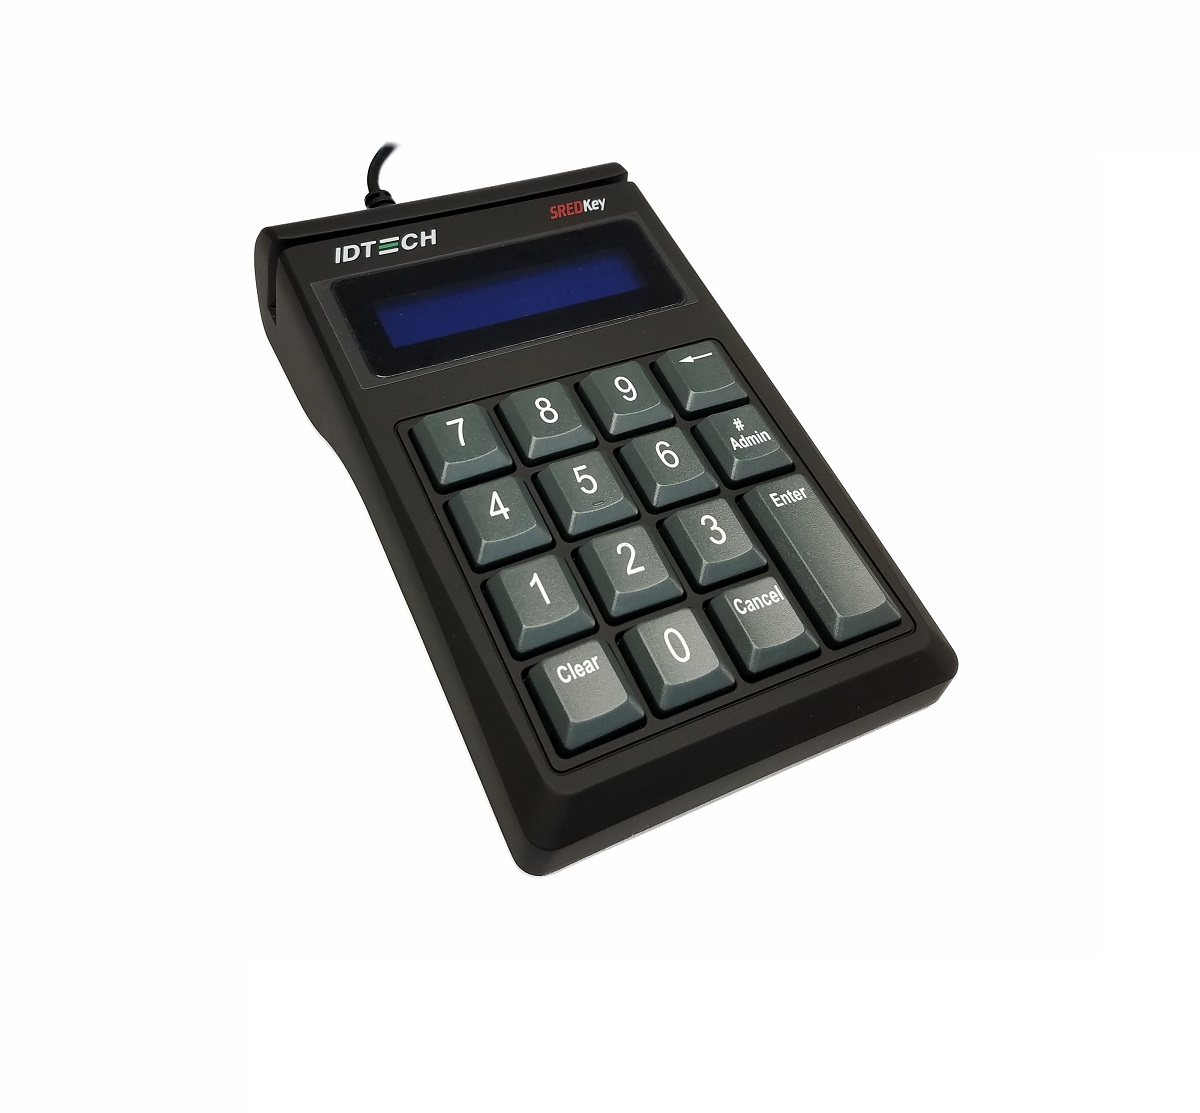 ID Tech SREDKey Payment Terminal LCD Display AES Usbusb Black TAA Compliance